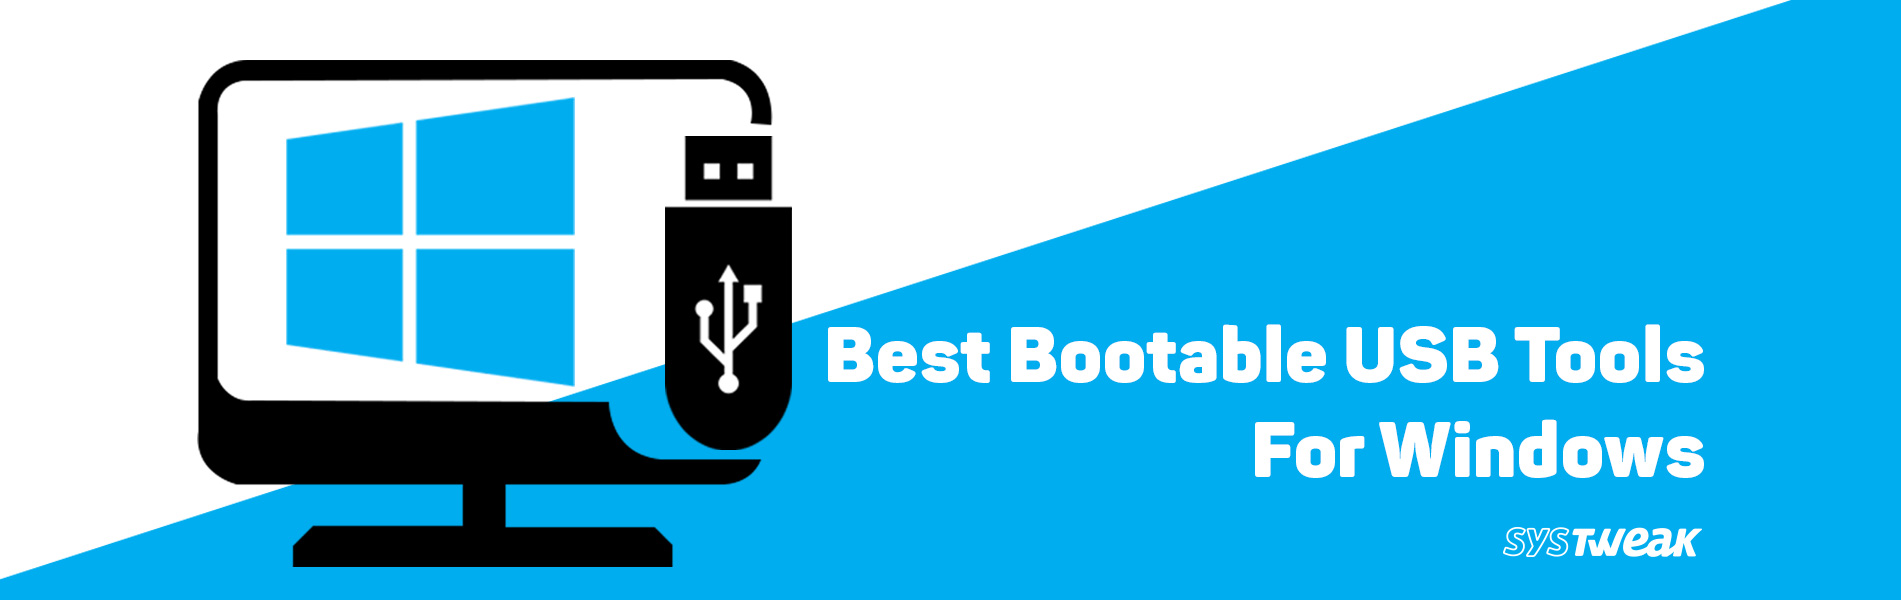 5 Best Bootable USB Tools For Windows